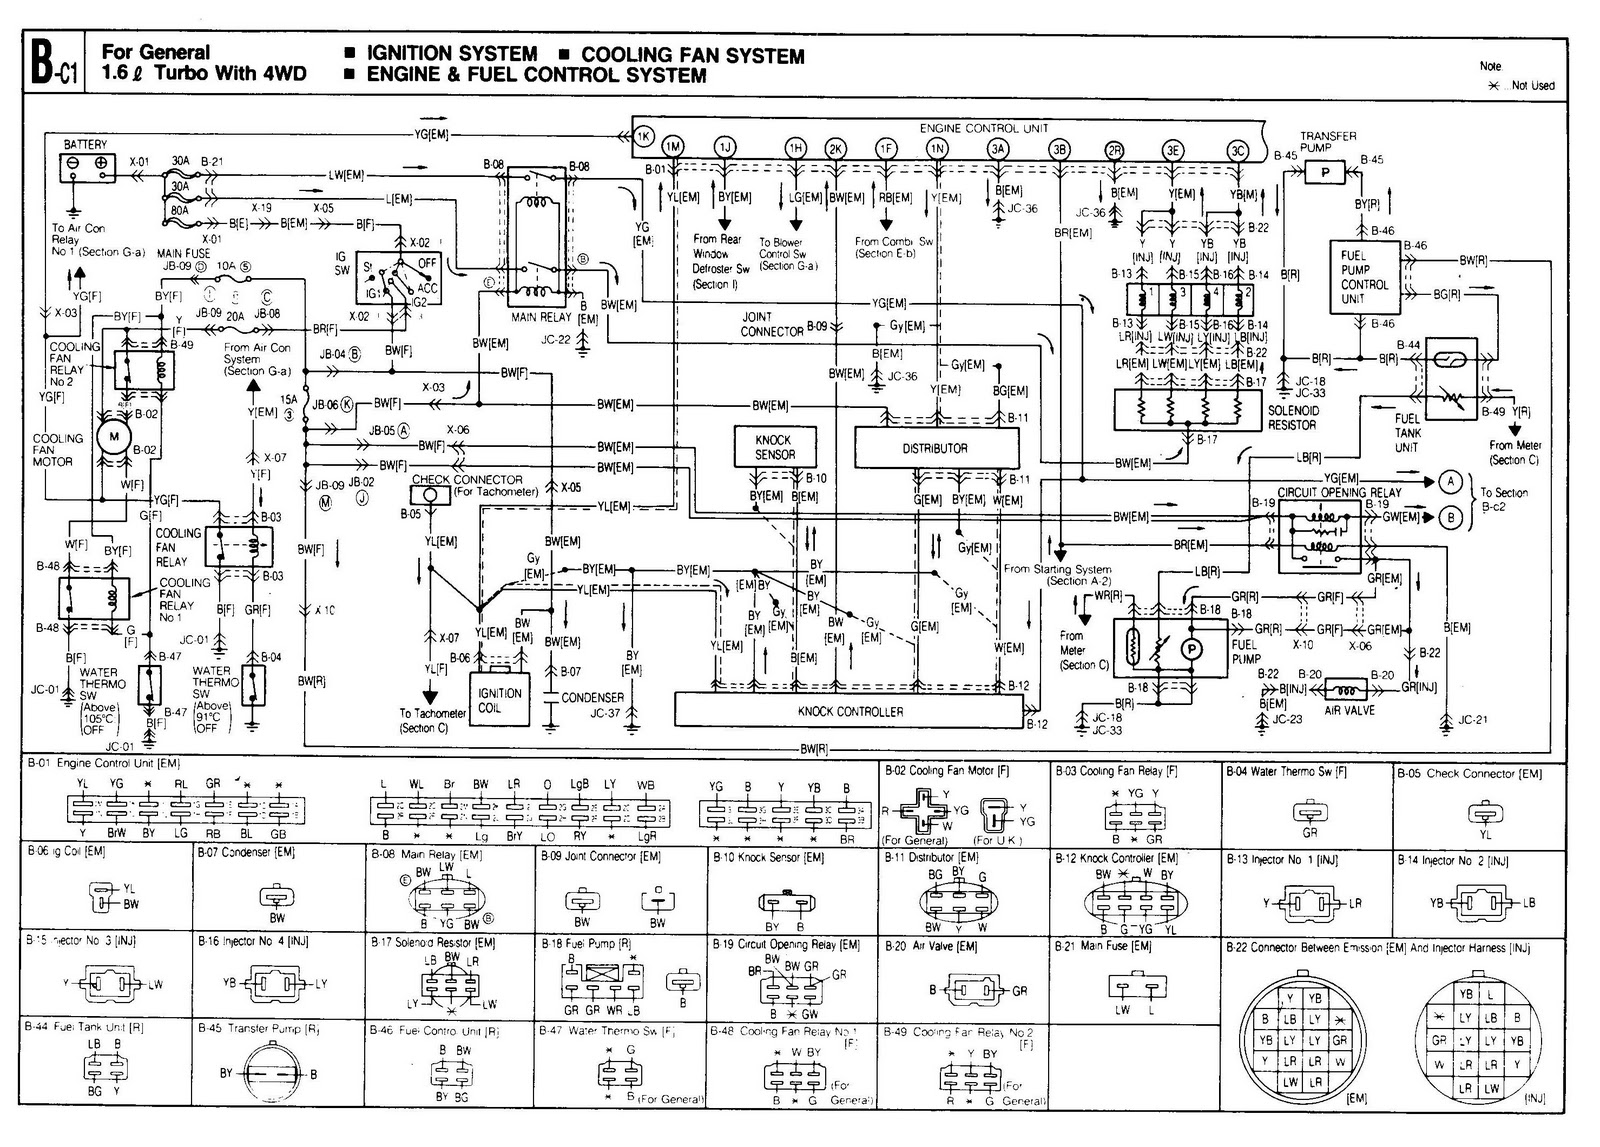 DIAGRAM] 2014 Mazda 2 Wiring Diagram FULL Version HD Quality Wiring Diagram  - WIRING-LUKE.JIMMY2K.ITwiring-luke.jimmy2k.it